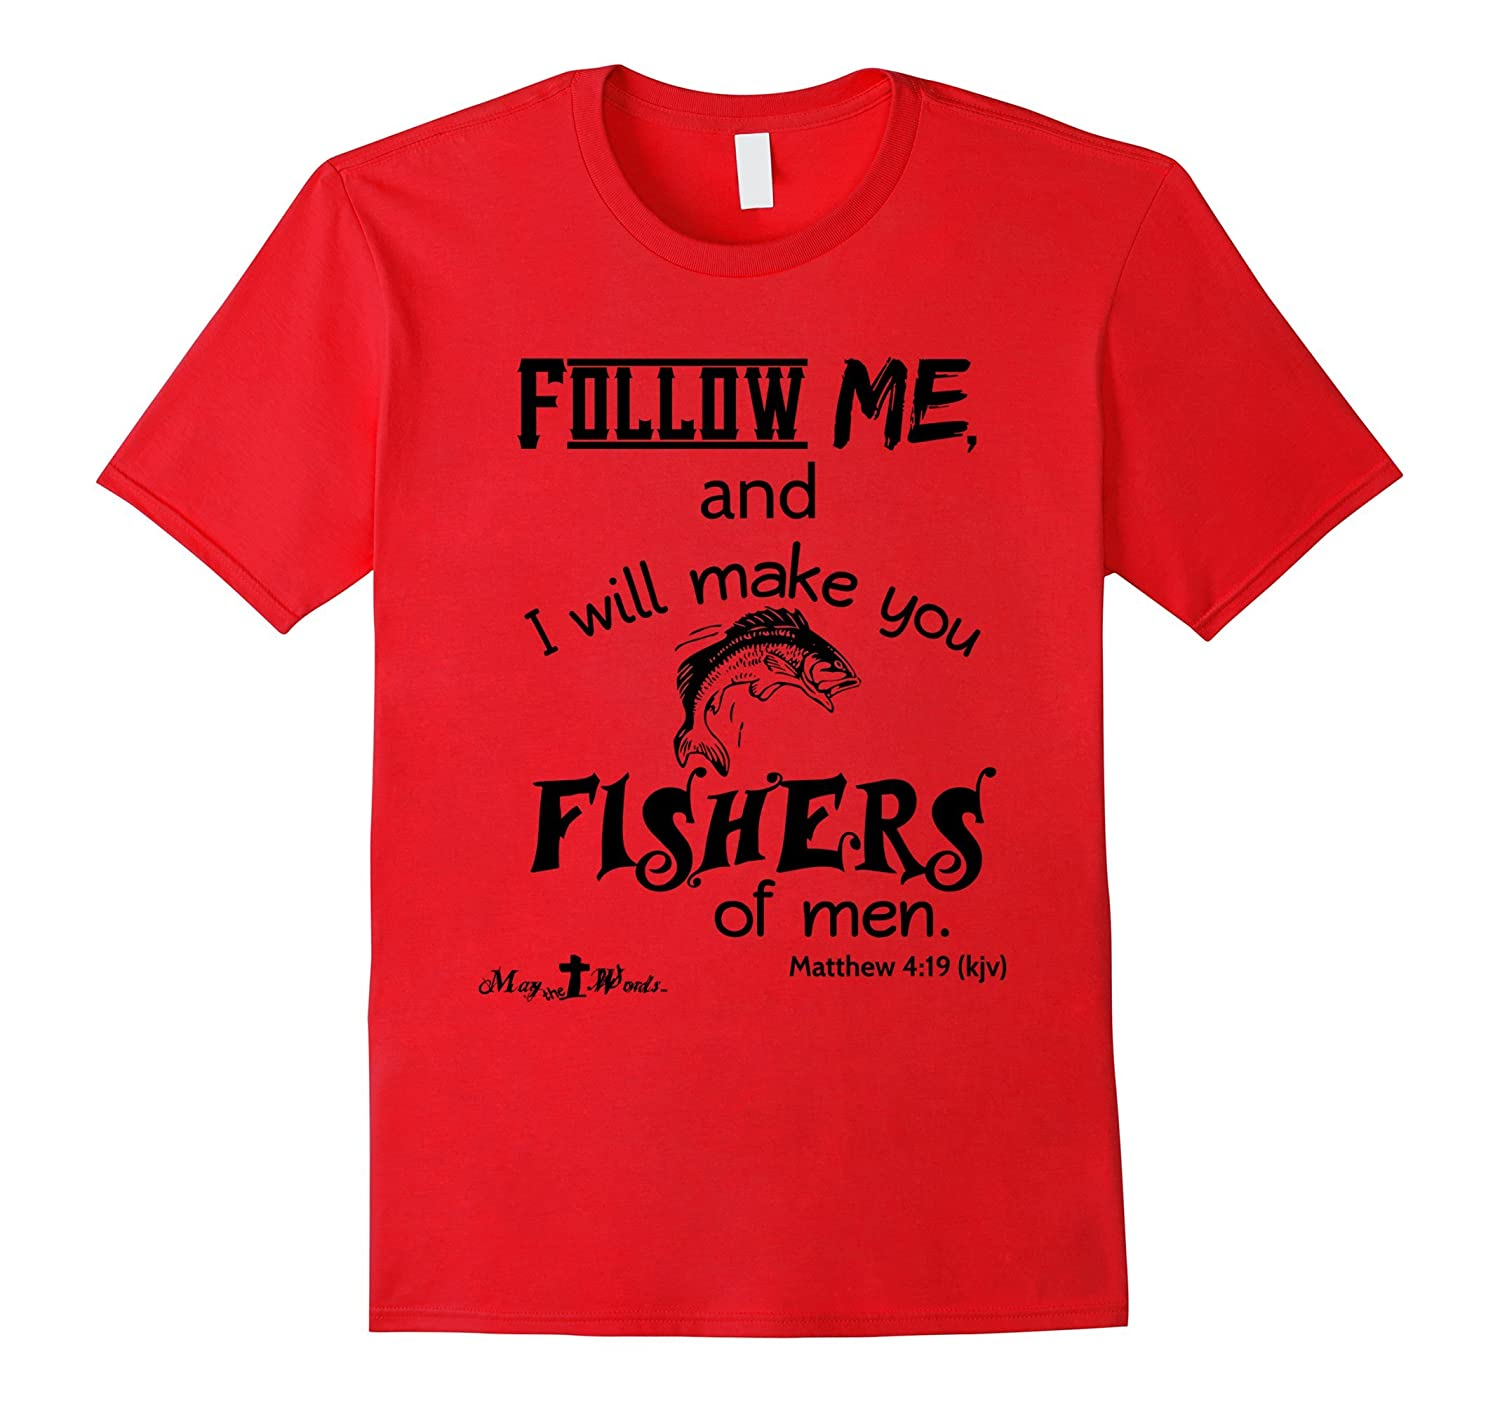 ...fishers of men Matthew 4:19 kjv tshirt-ANZ